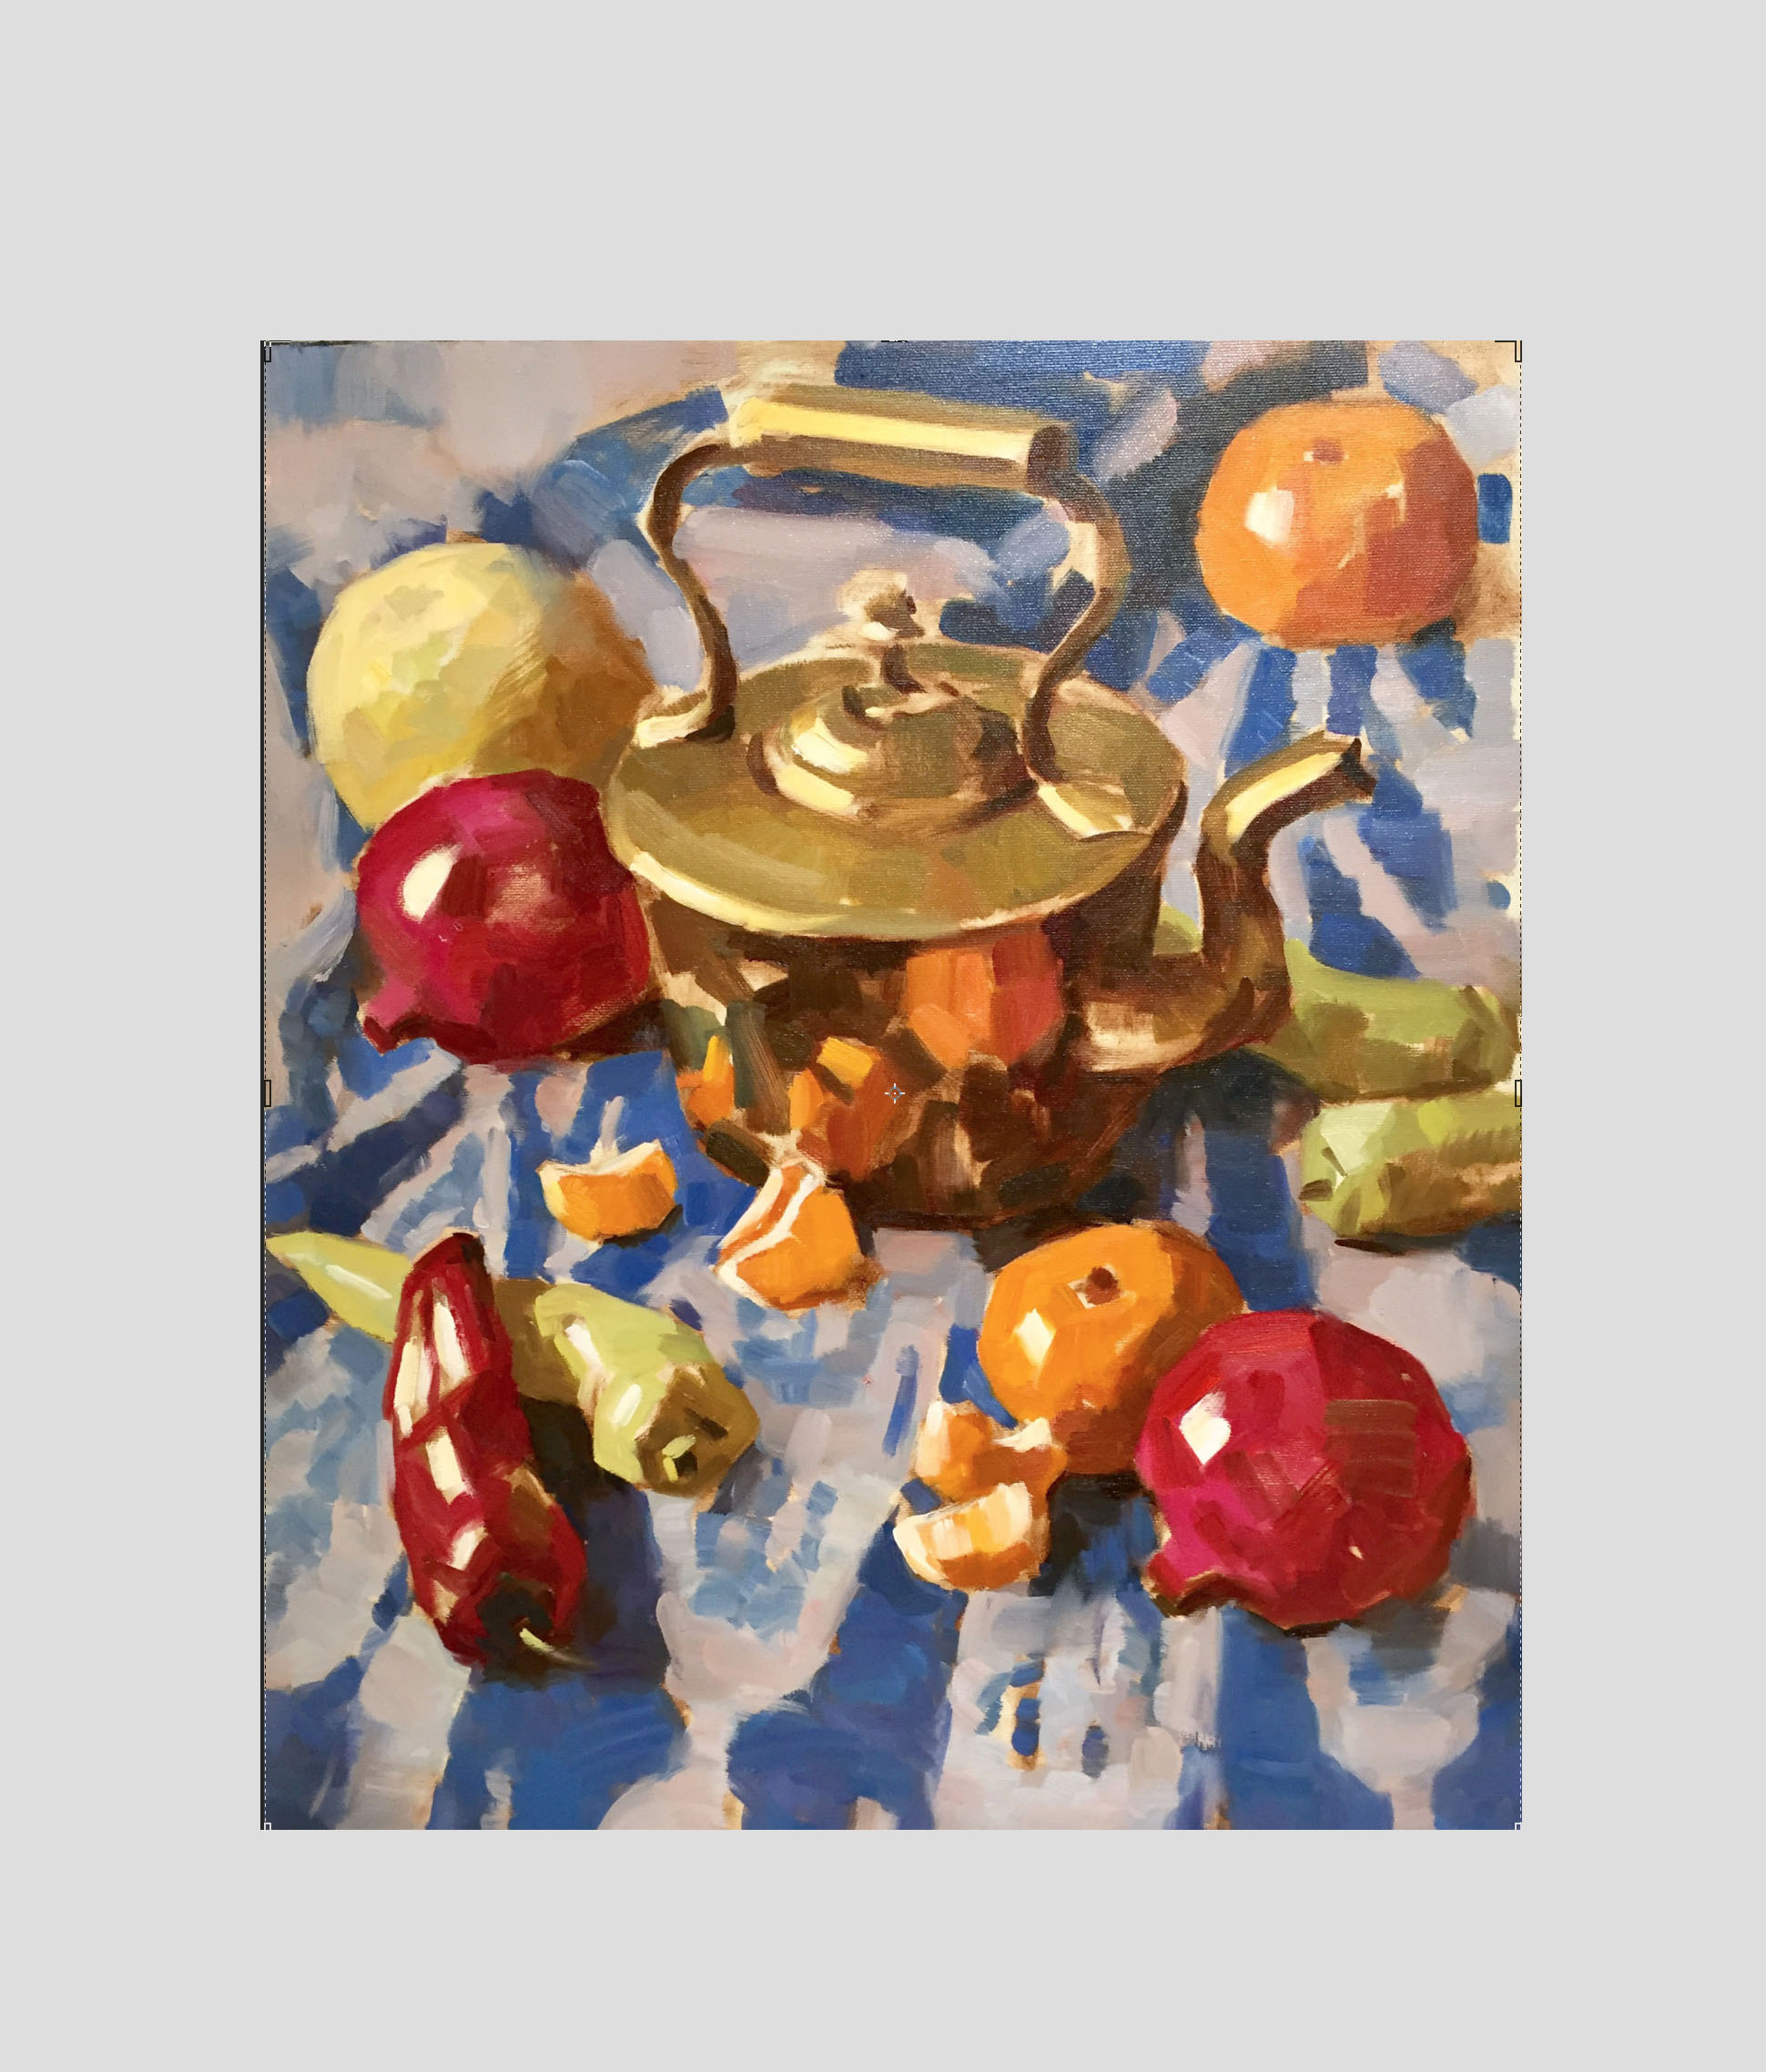 Copper Kettle with Fruits and Peppers.   Oil on Canvas   60 x 50 cm  2017